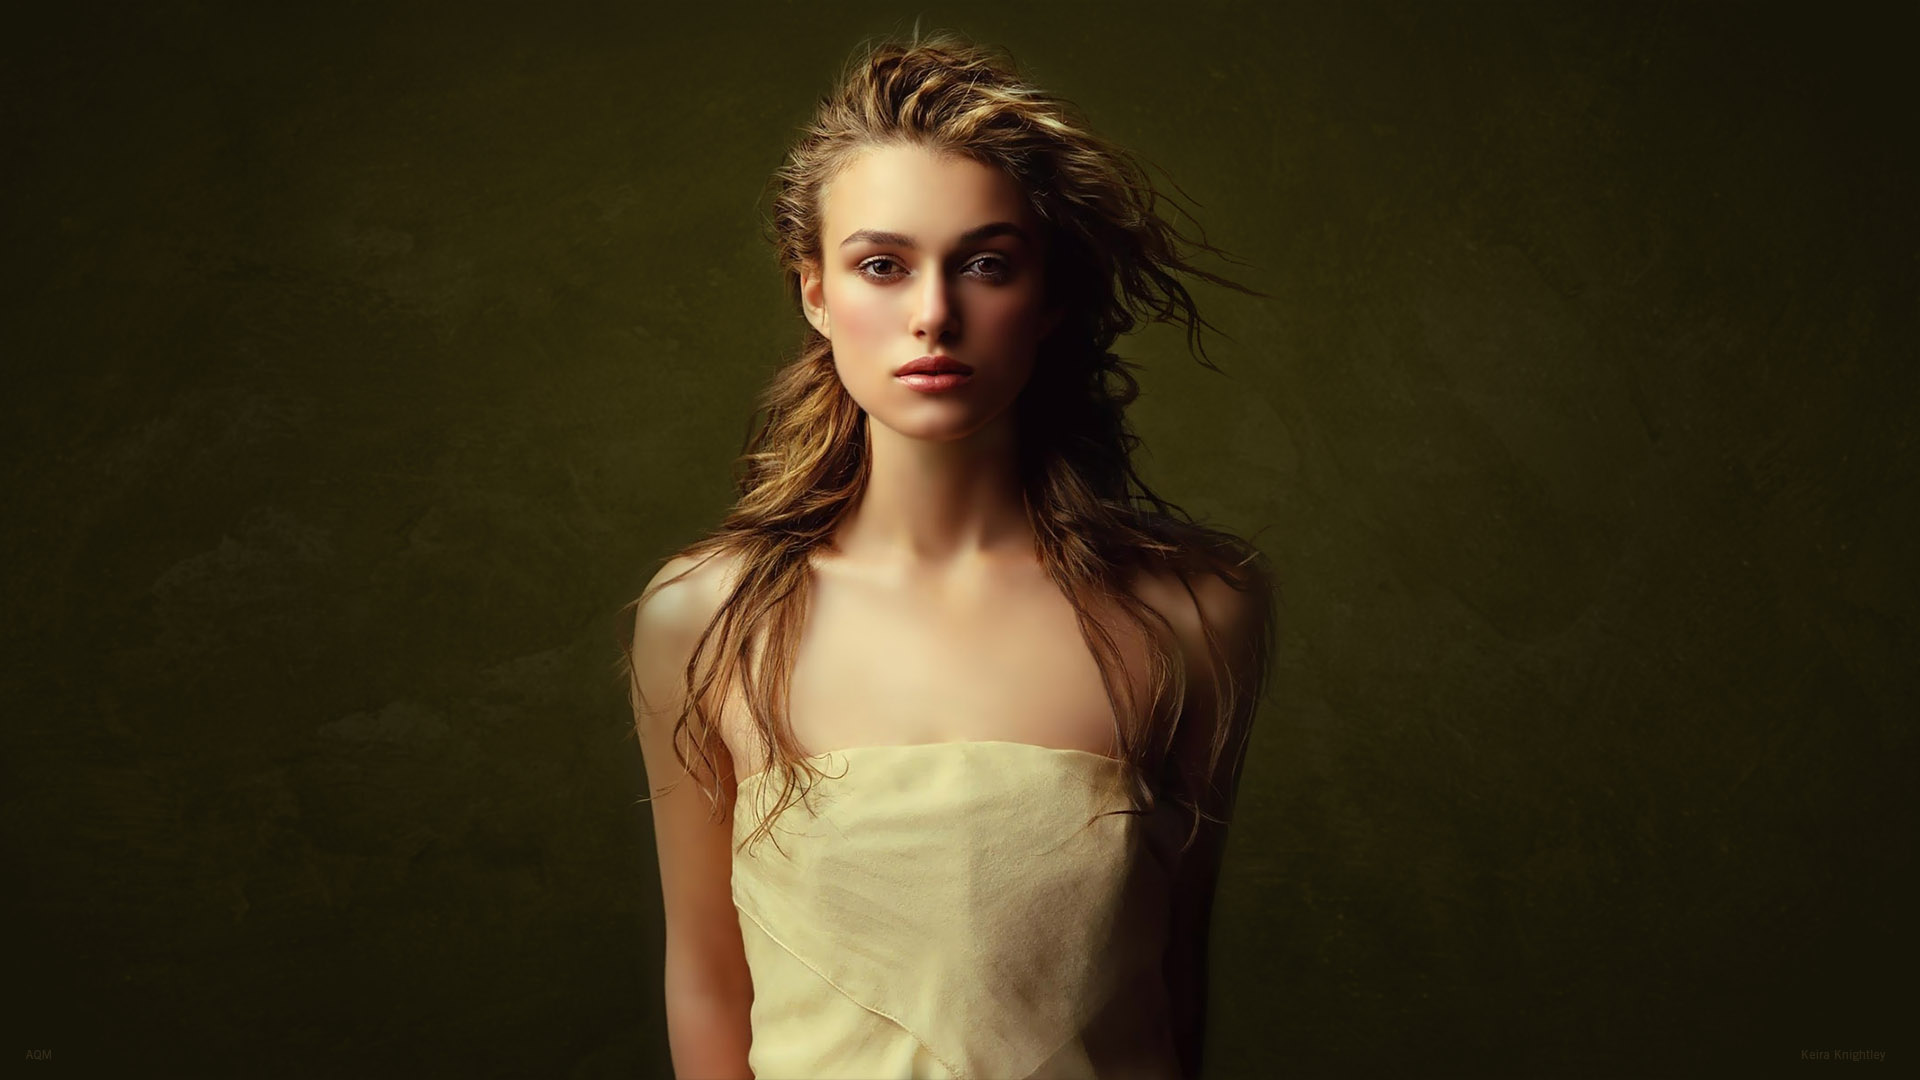 Keira Knightley Wallpapers Images Photos Pictures